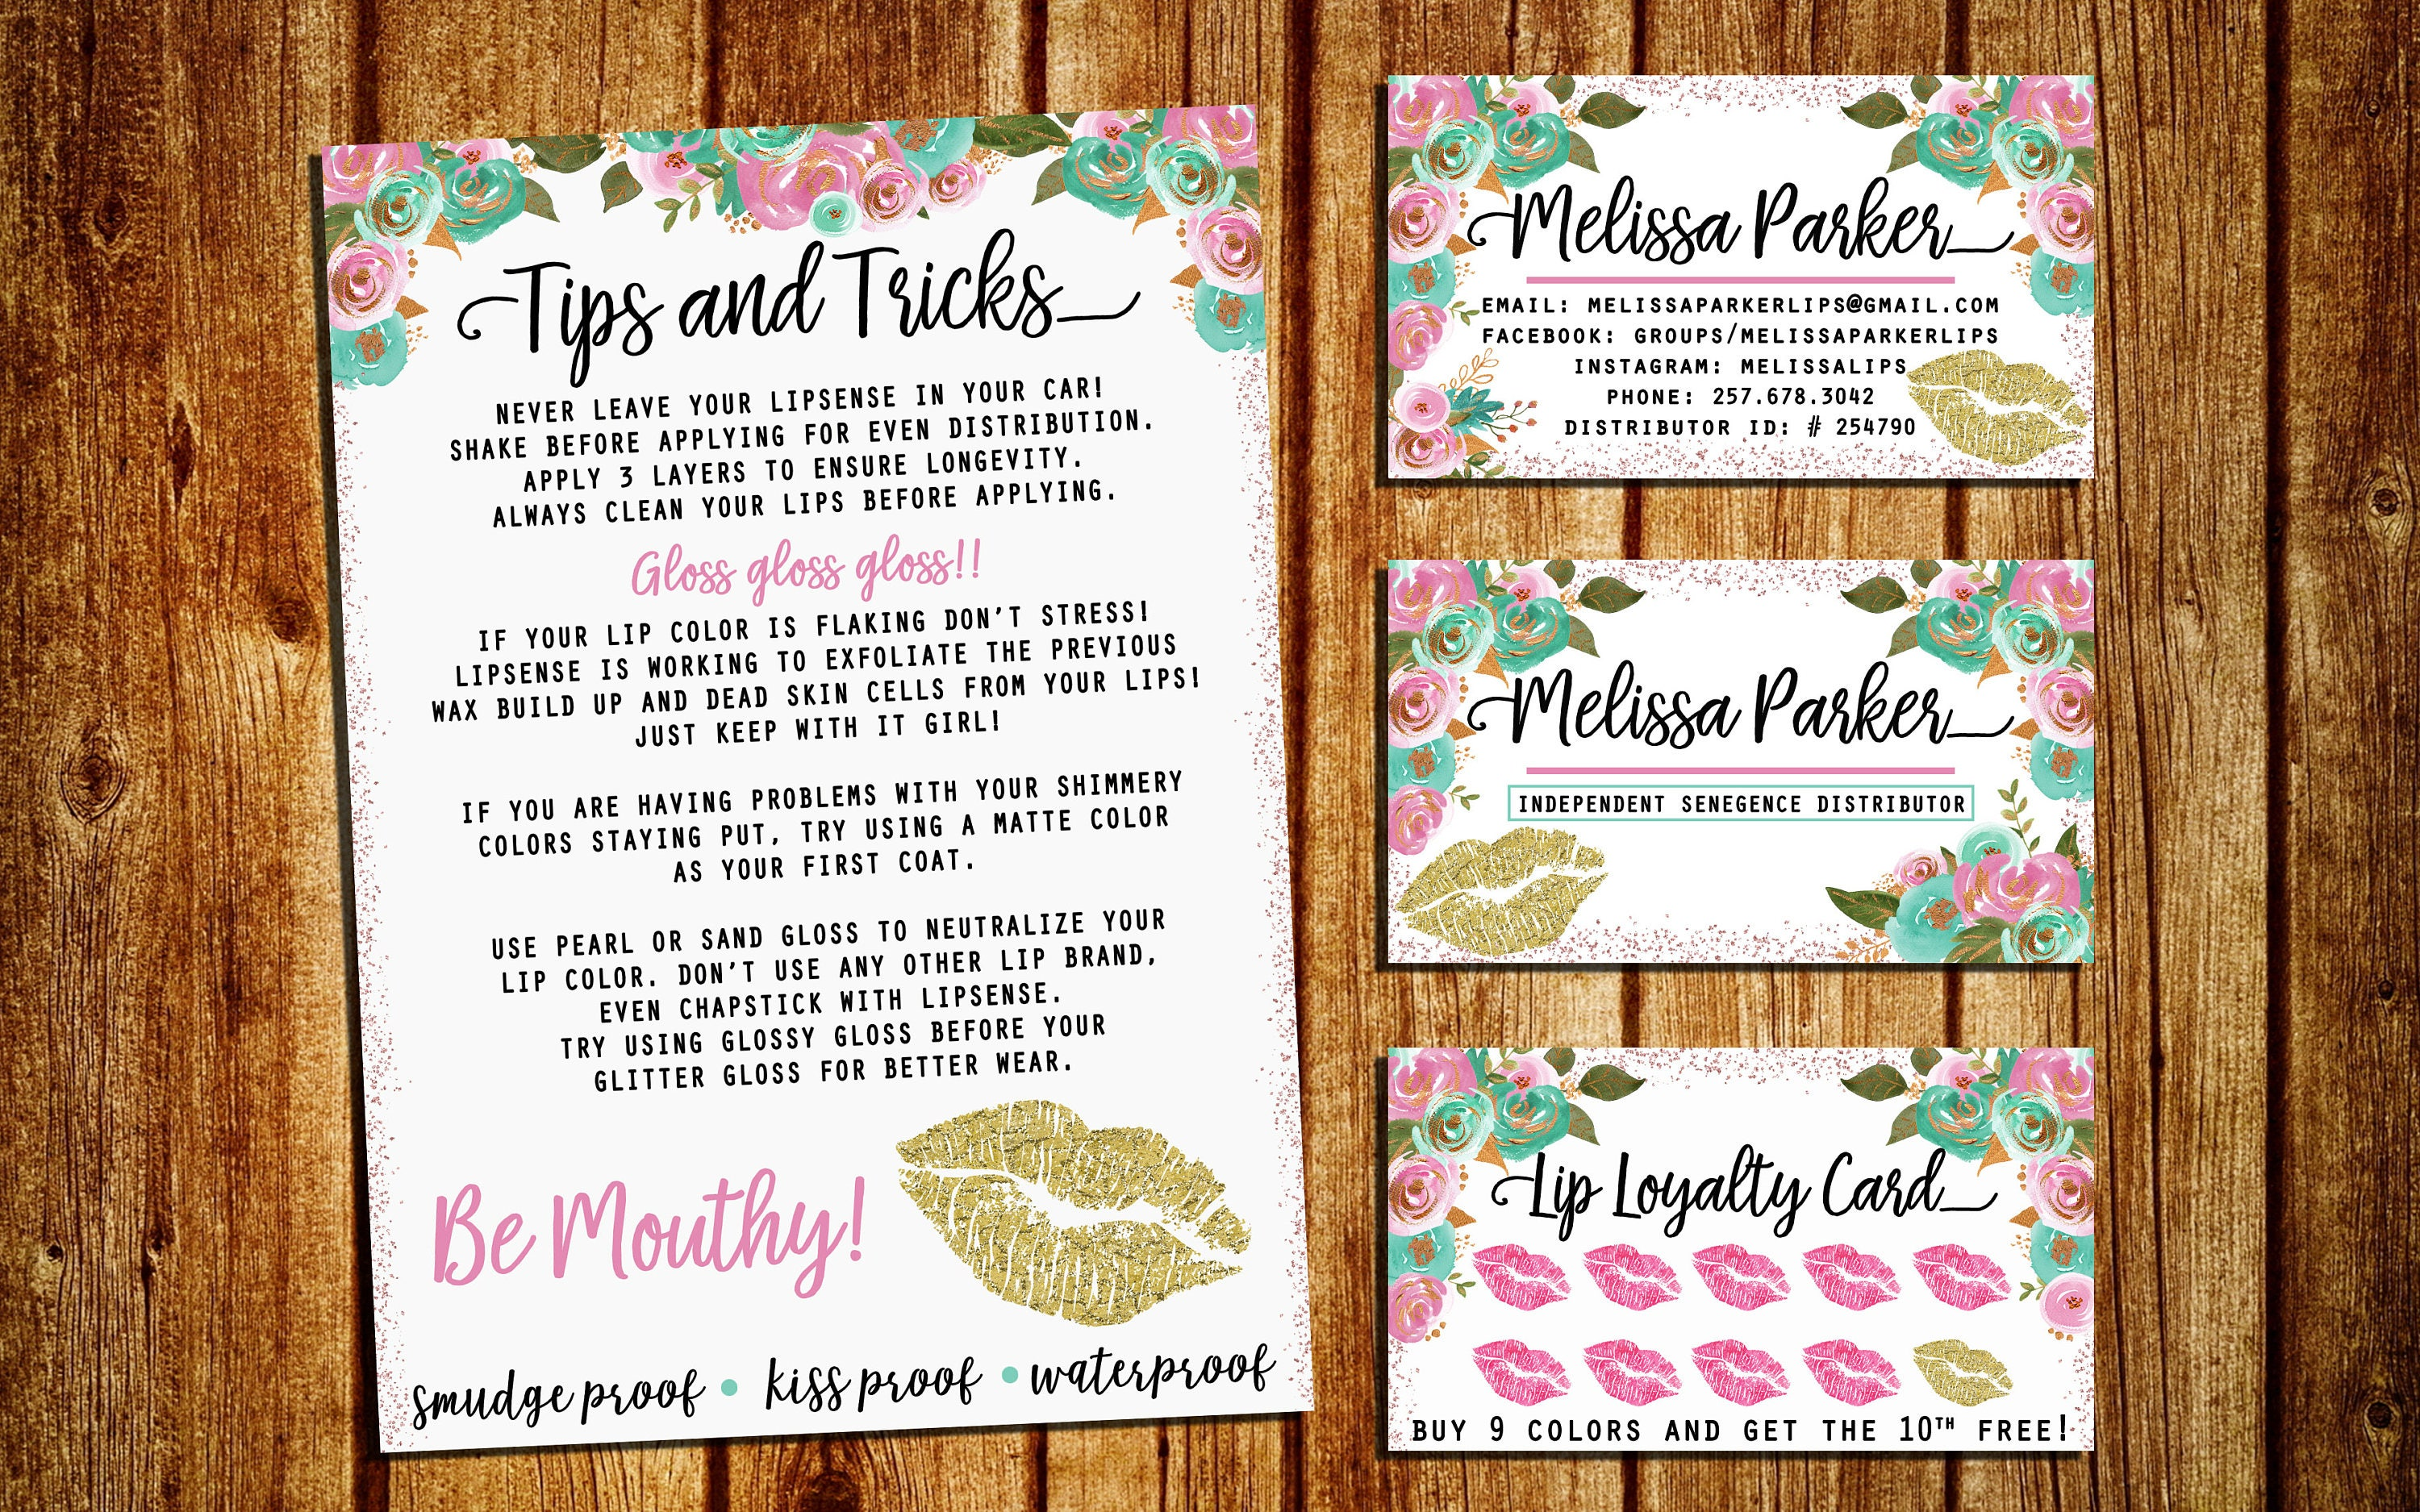 lipsense business card with tips and tricks loyalty card